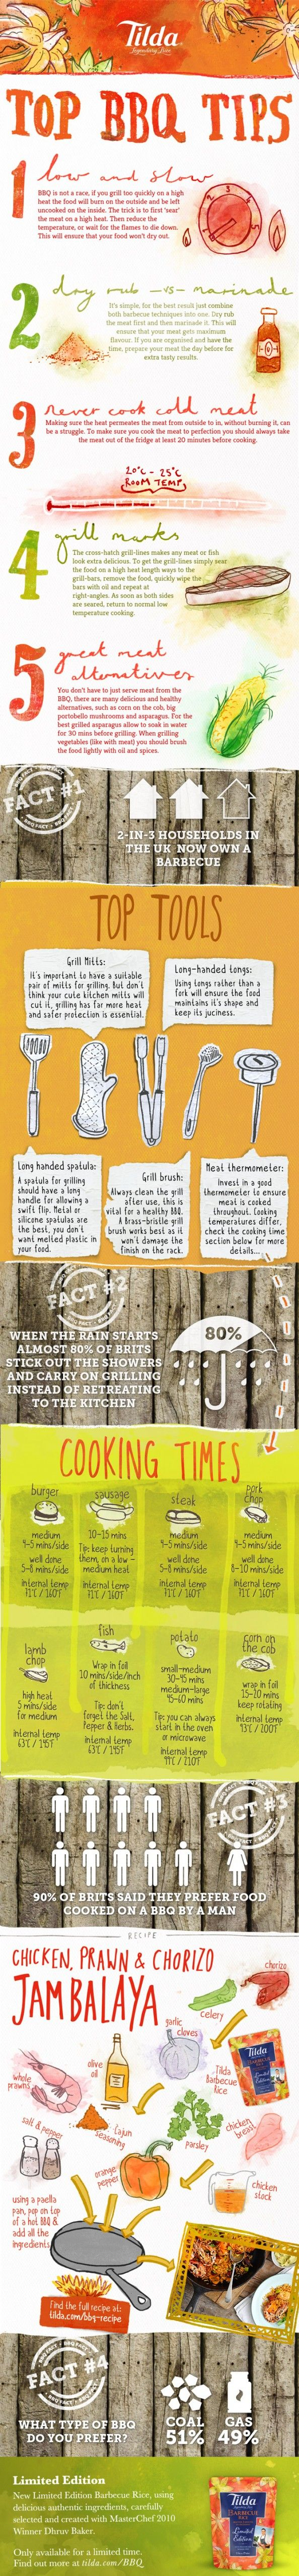 Here's a Top #BBQ Tips #Infographic for your reference | Curated by Butcherman: Sydney's Online Butcher Shop >> www.butcherman.com.au